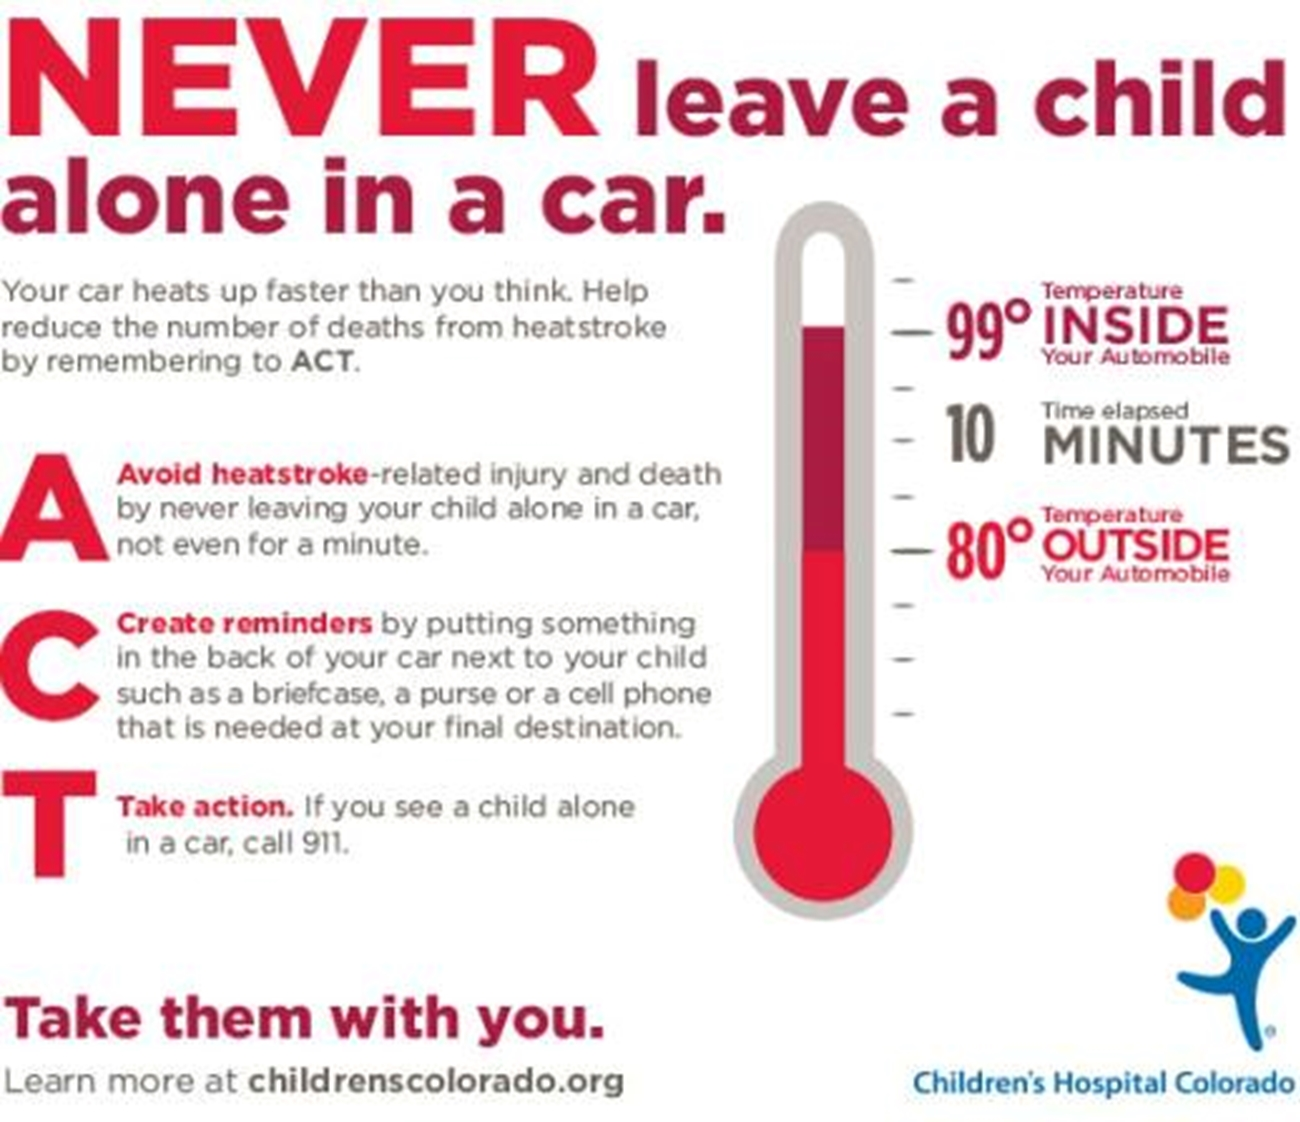 An infographic that says you should never leave kids alone in a car. The word ACT is spelled vertically with the following information: Avoid heatstroke-related injury and death by never leaving your child alone in a car, not even for a minute; Create reminders by putting something in the back of your car next to your child such as a briefcase, a purse or a cell phone that is needed at your final destination; Take action - if you see a child alone in a car, call 911.